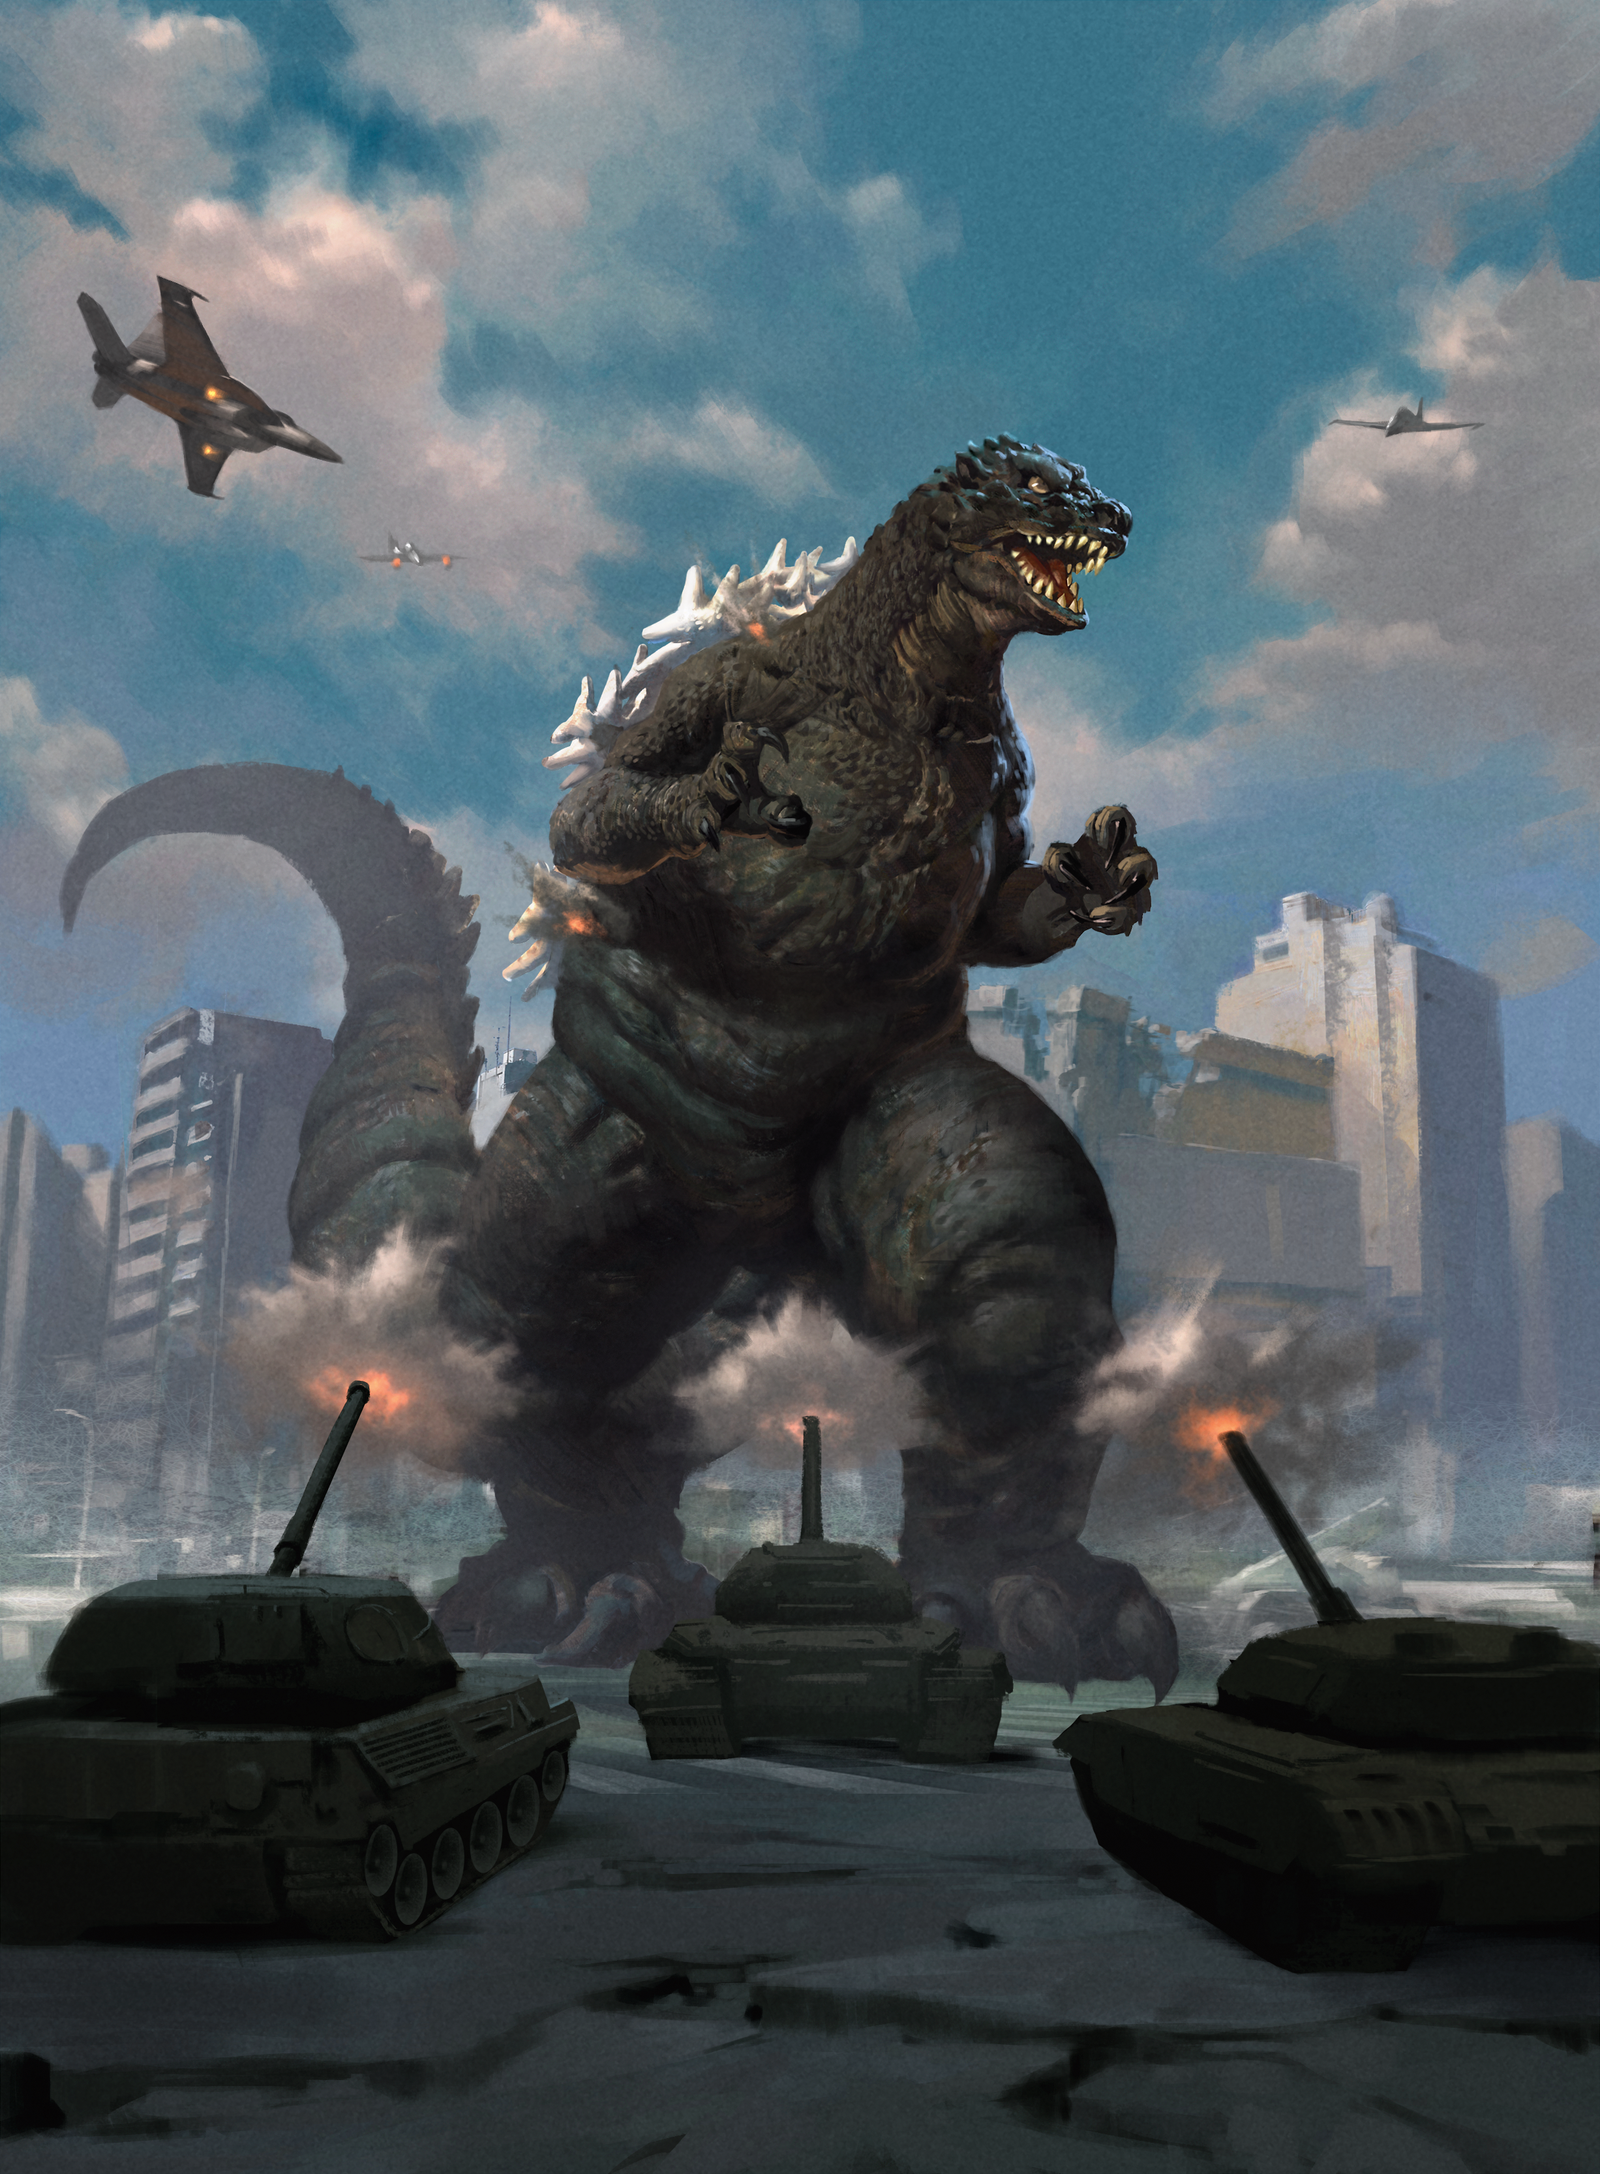 The full card art for Godzilla, Primeval Titan...